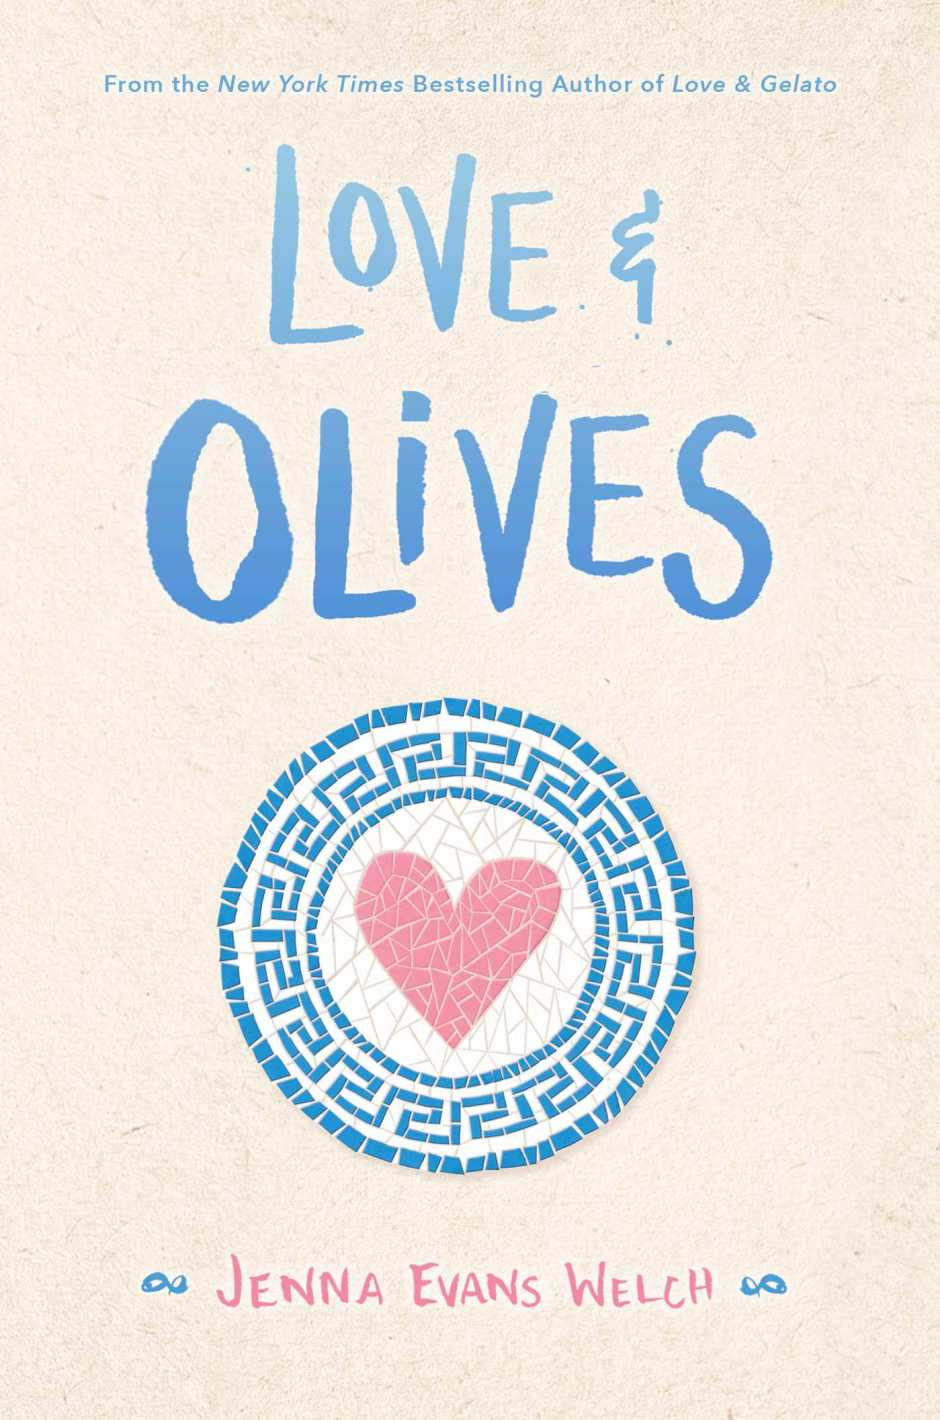 Love & Olives   Book by Jenna Evans Welch   Official Publisher ...